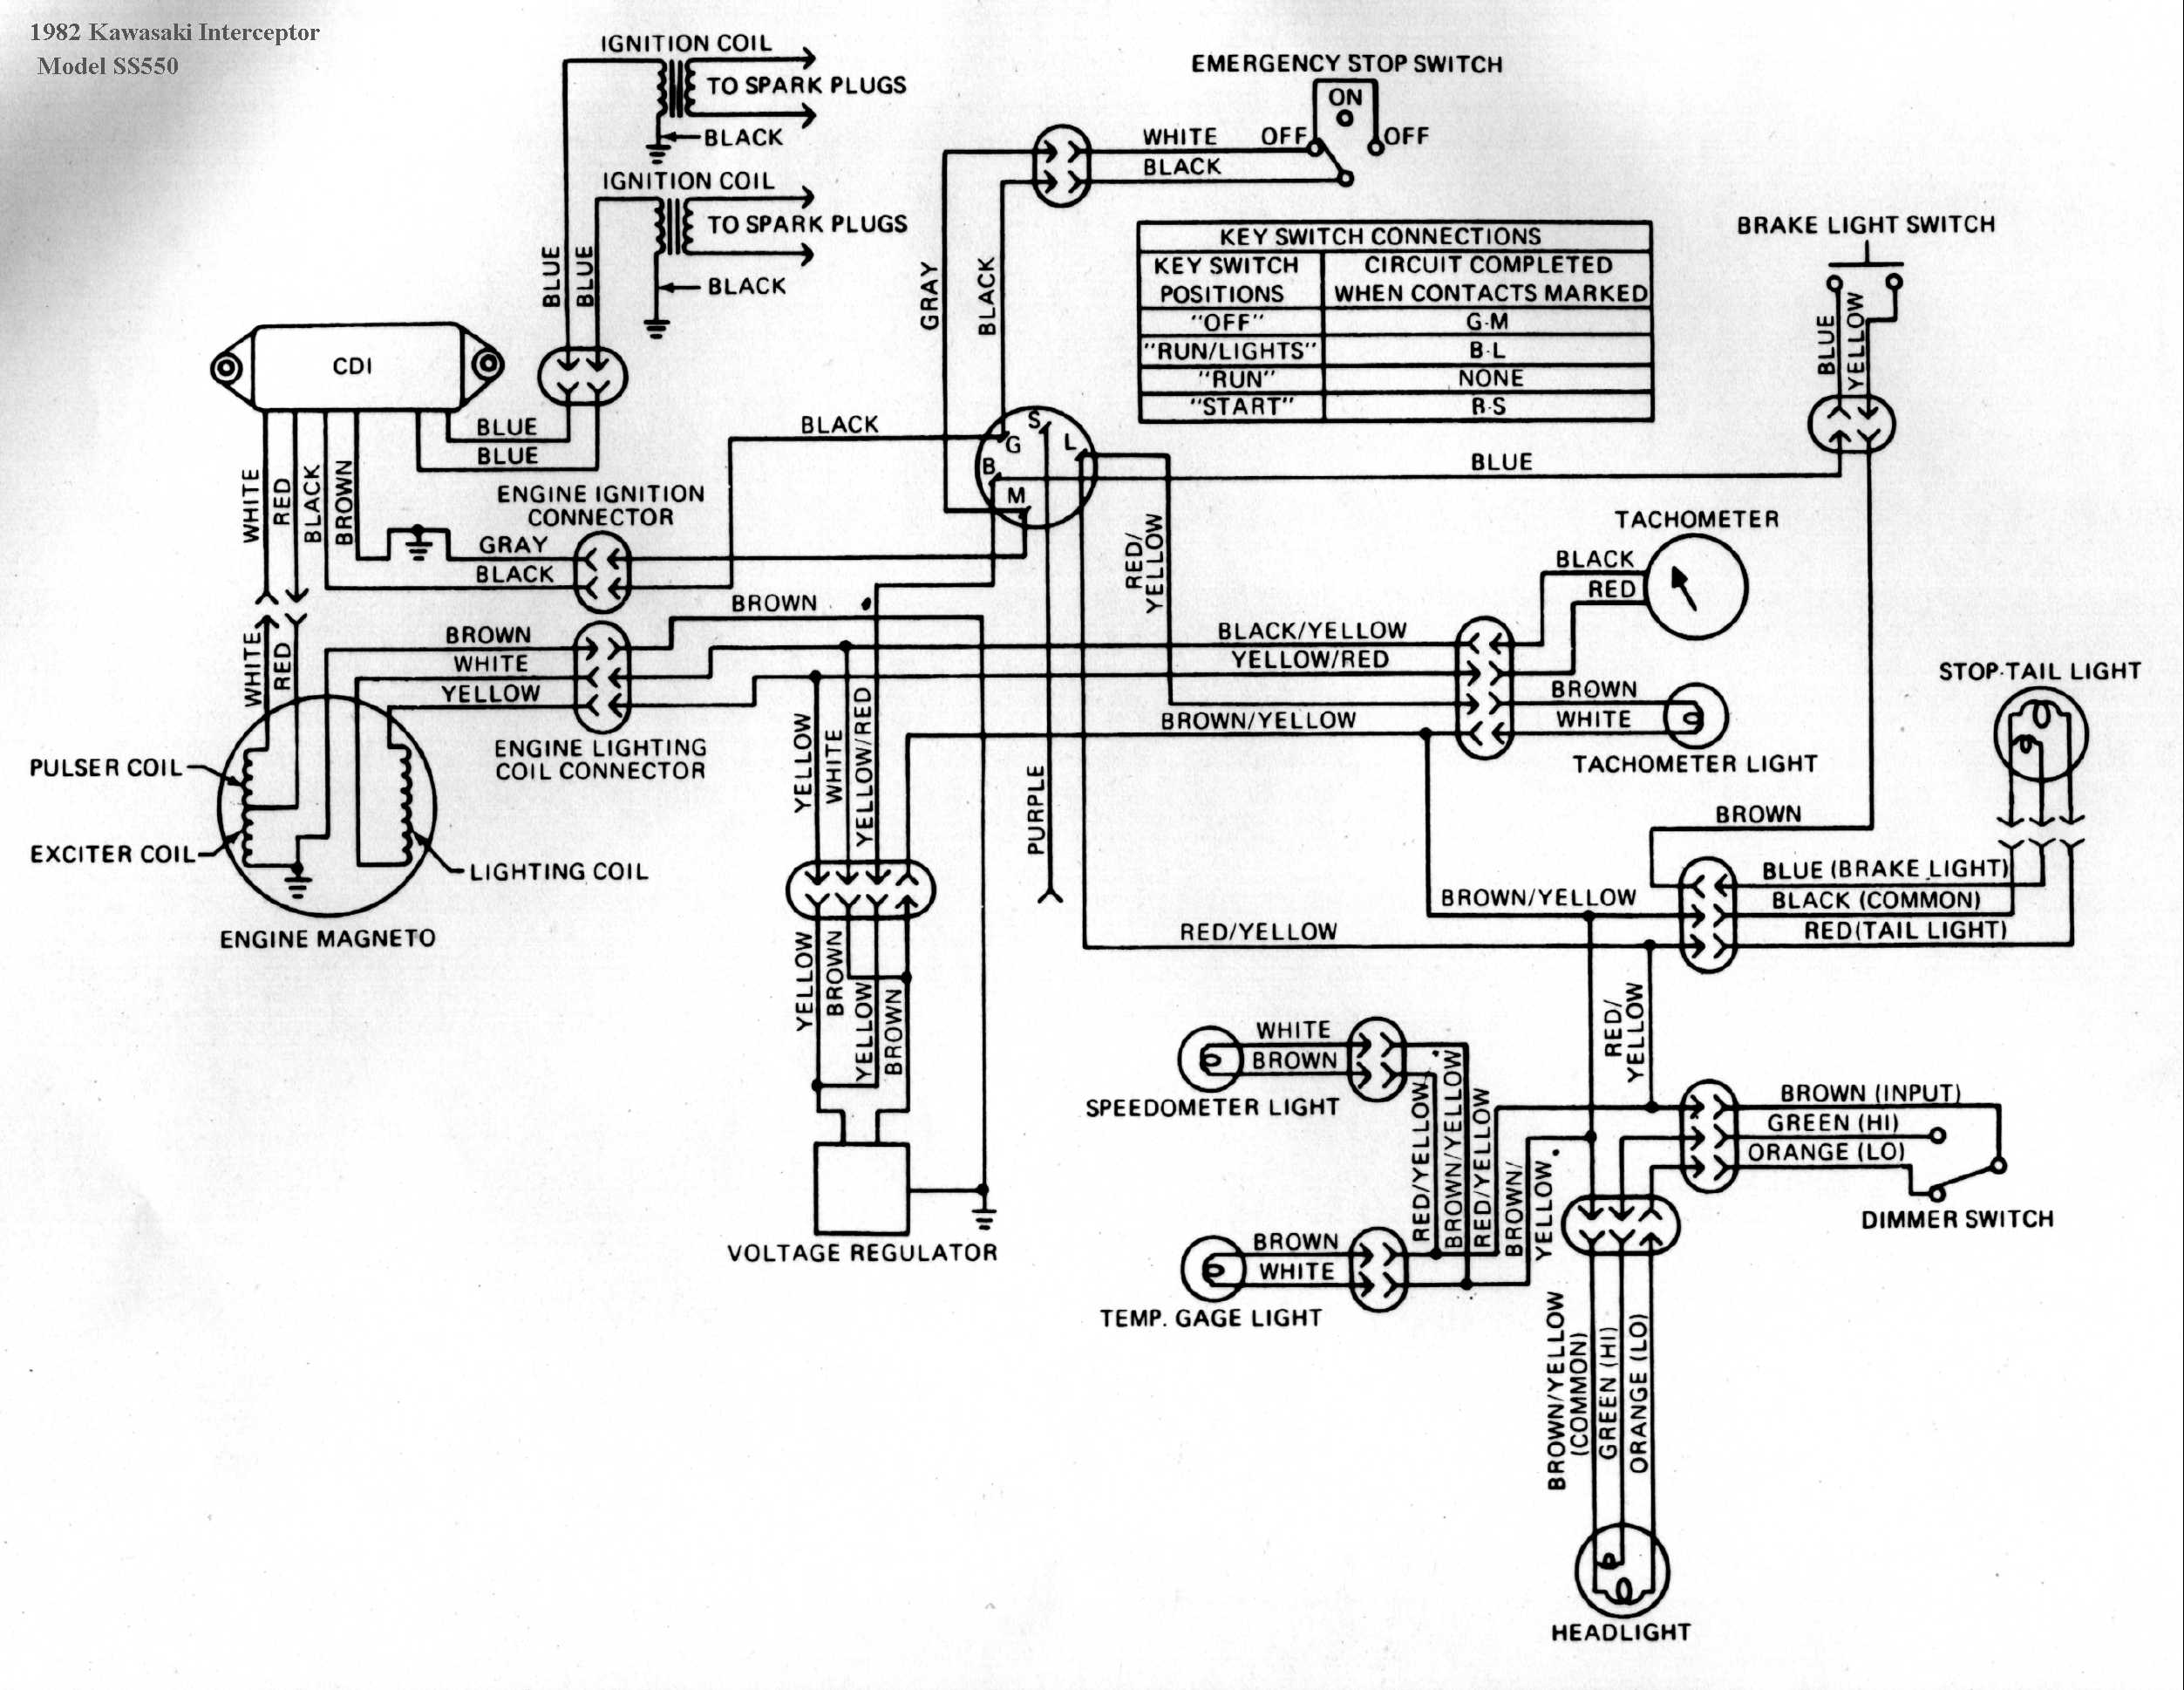 WRG-4272] 1981 Kz550 Ltd Wiring Diagram on honda motorcycle repair diagrams, electrical diagrams, pinout diagrams, engine diagrams, troubleshooting diagrams, lighting diagrams, motor diagrams, switch diagrams, smart car diagrams, gmc fuse box diagrams, internet of things diagrams, hvac diagrams, sincgars radio configurations diagrams, series and parallel circuits diagrams, electronic circuit diagrams, friendship bracelet diagrams, led circuit diagrams, battery diagrams, transformer diagrams,